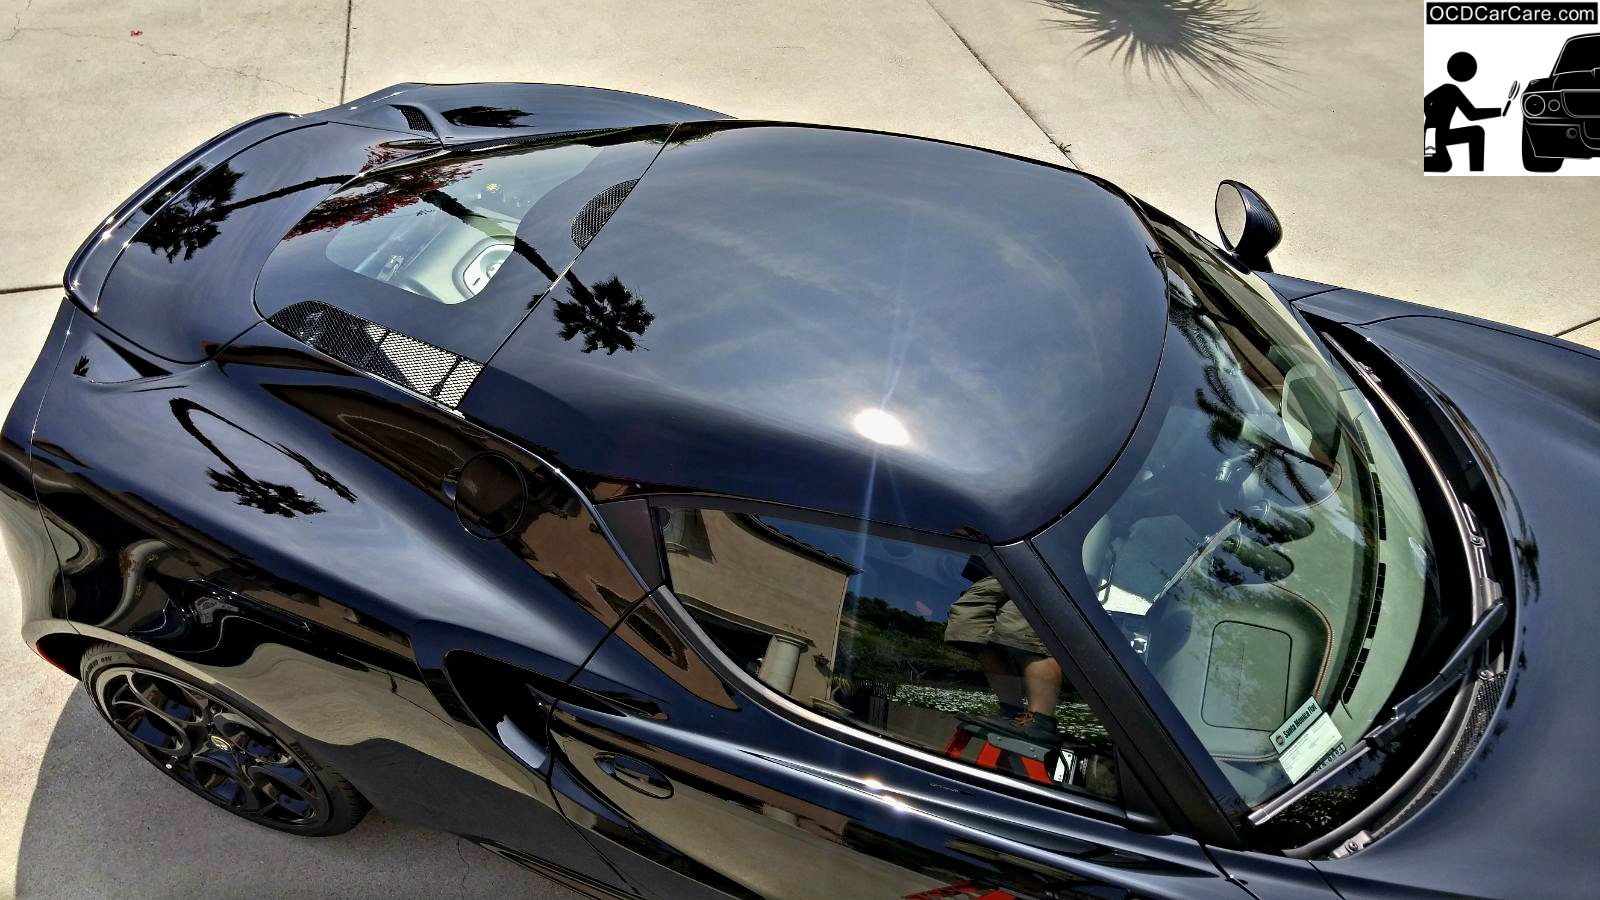 Gloss is the hallmark of a refined surface due to paint polishing by OCDCarCare Los Angeles.